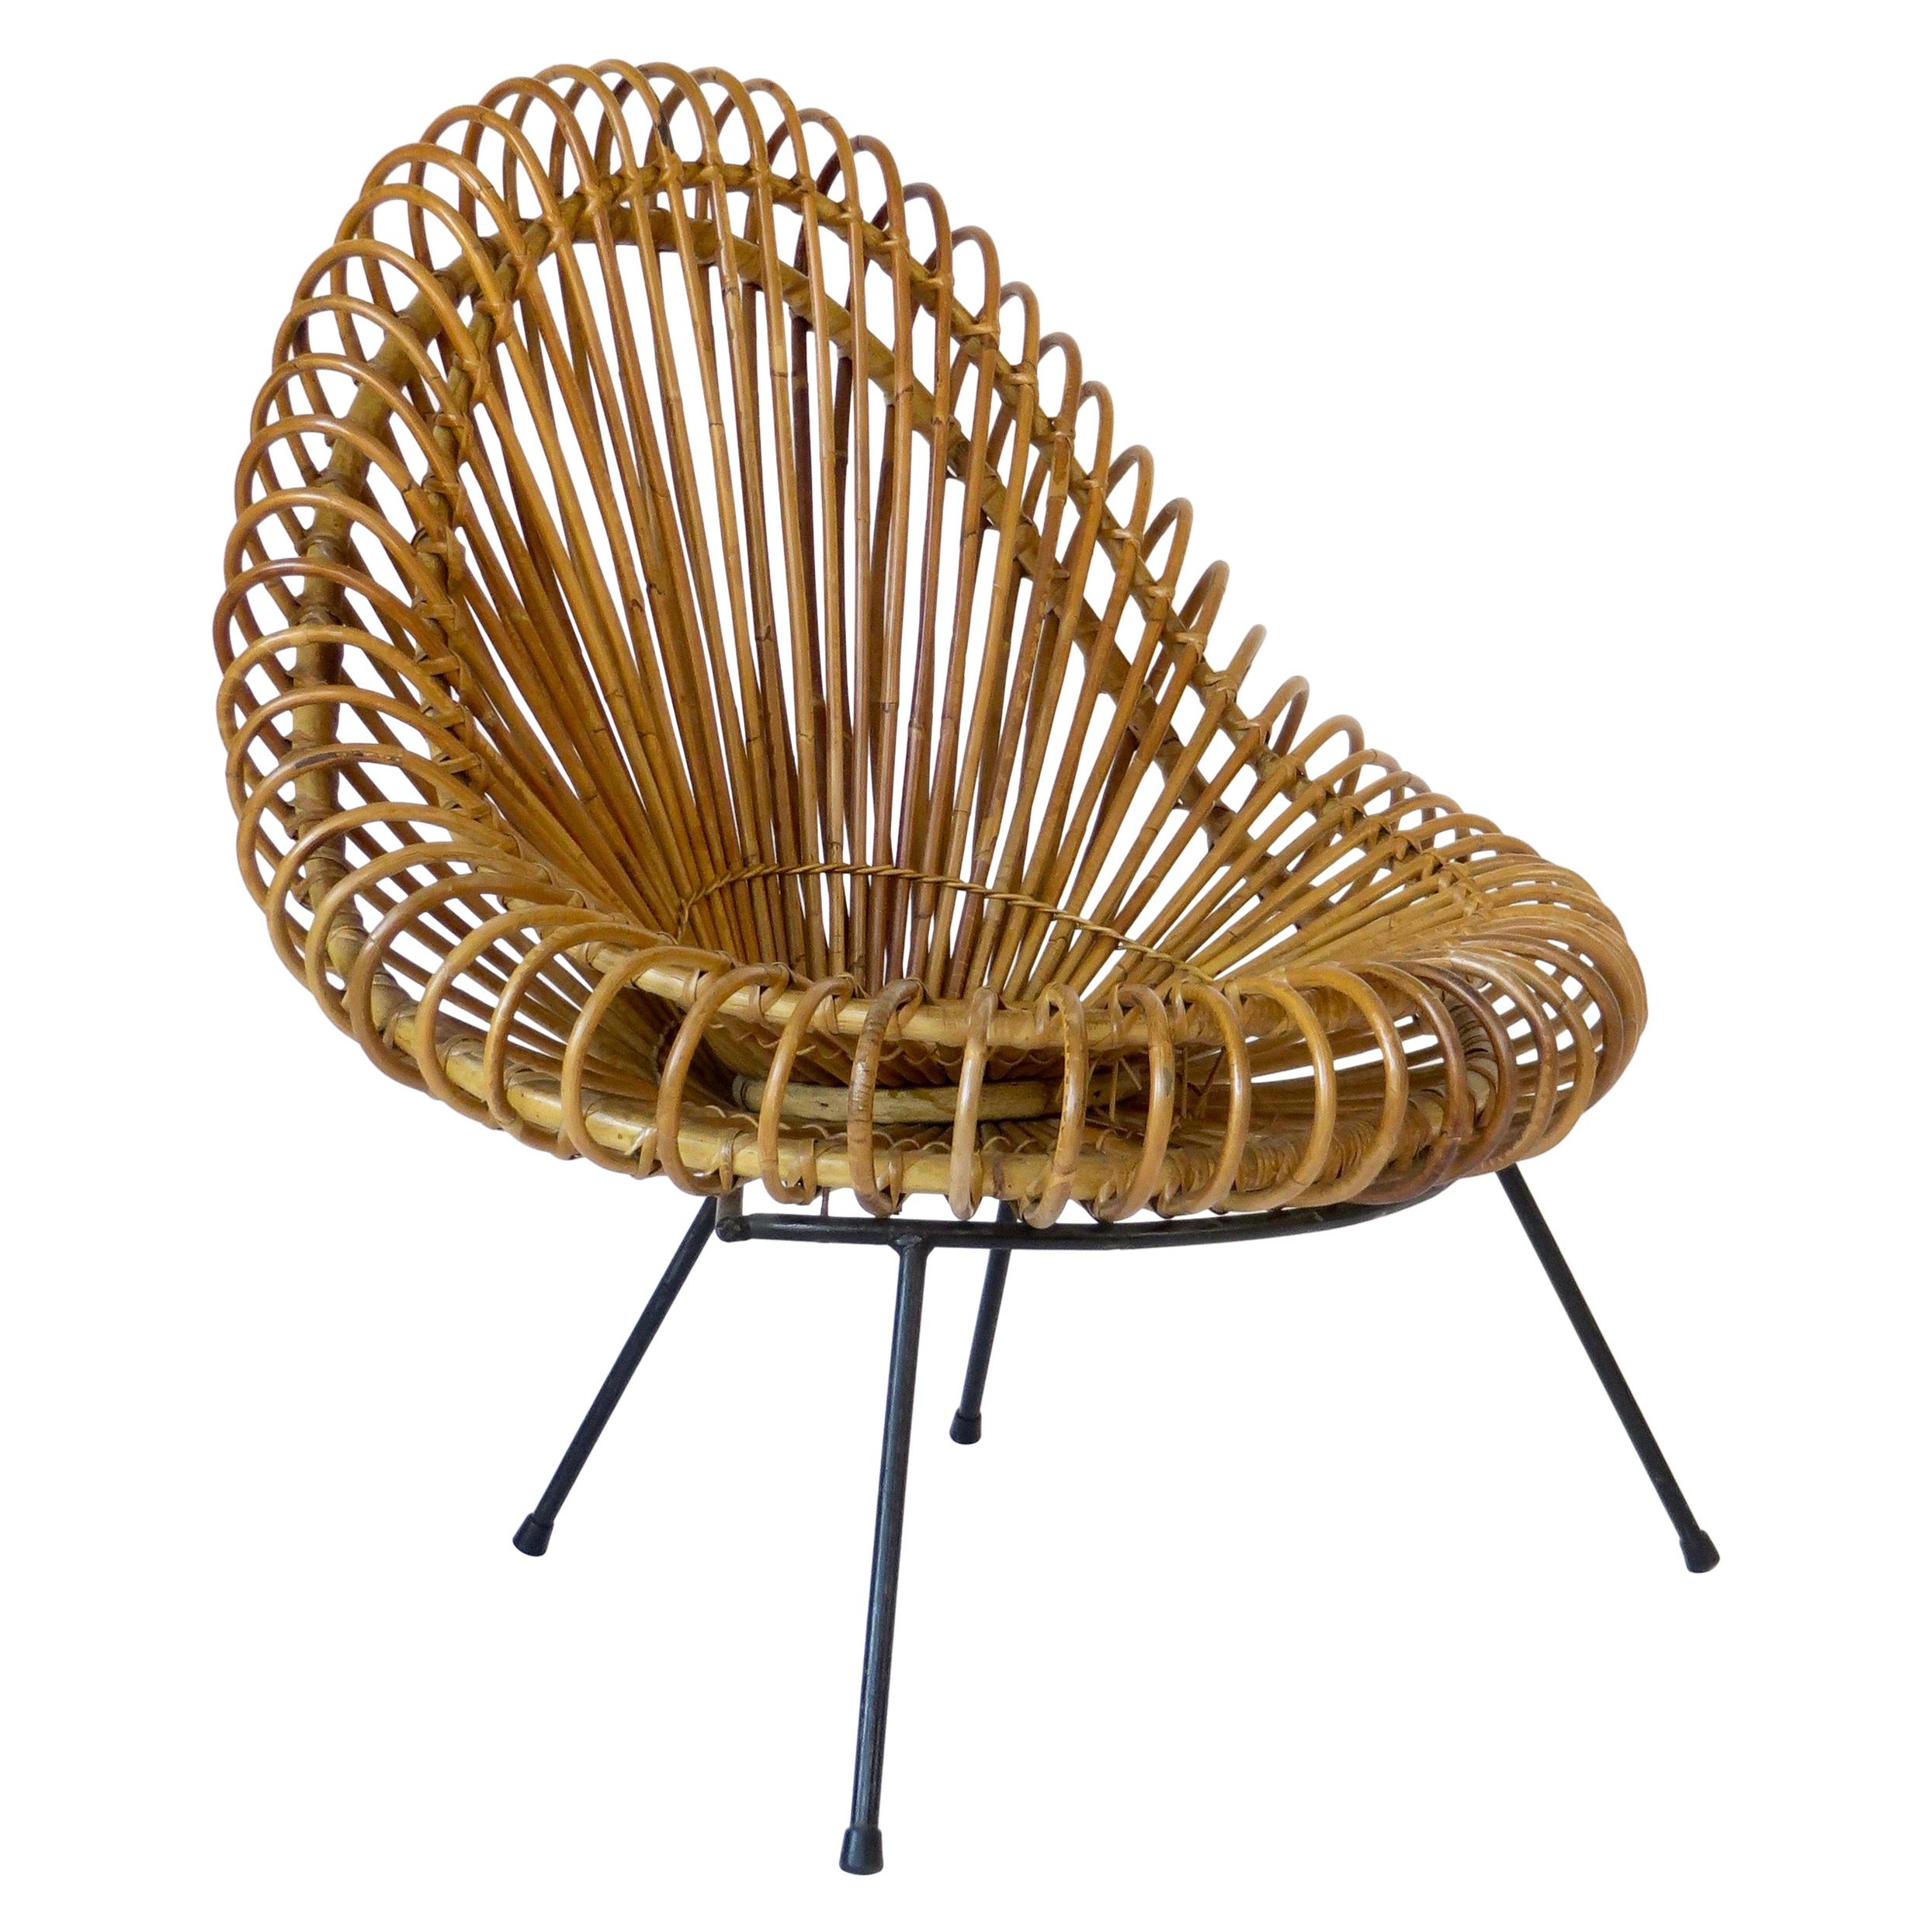 Janine Abraham and Dirk Jan Rol Rattan Lounge Chair Edition Rougier